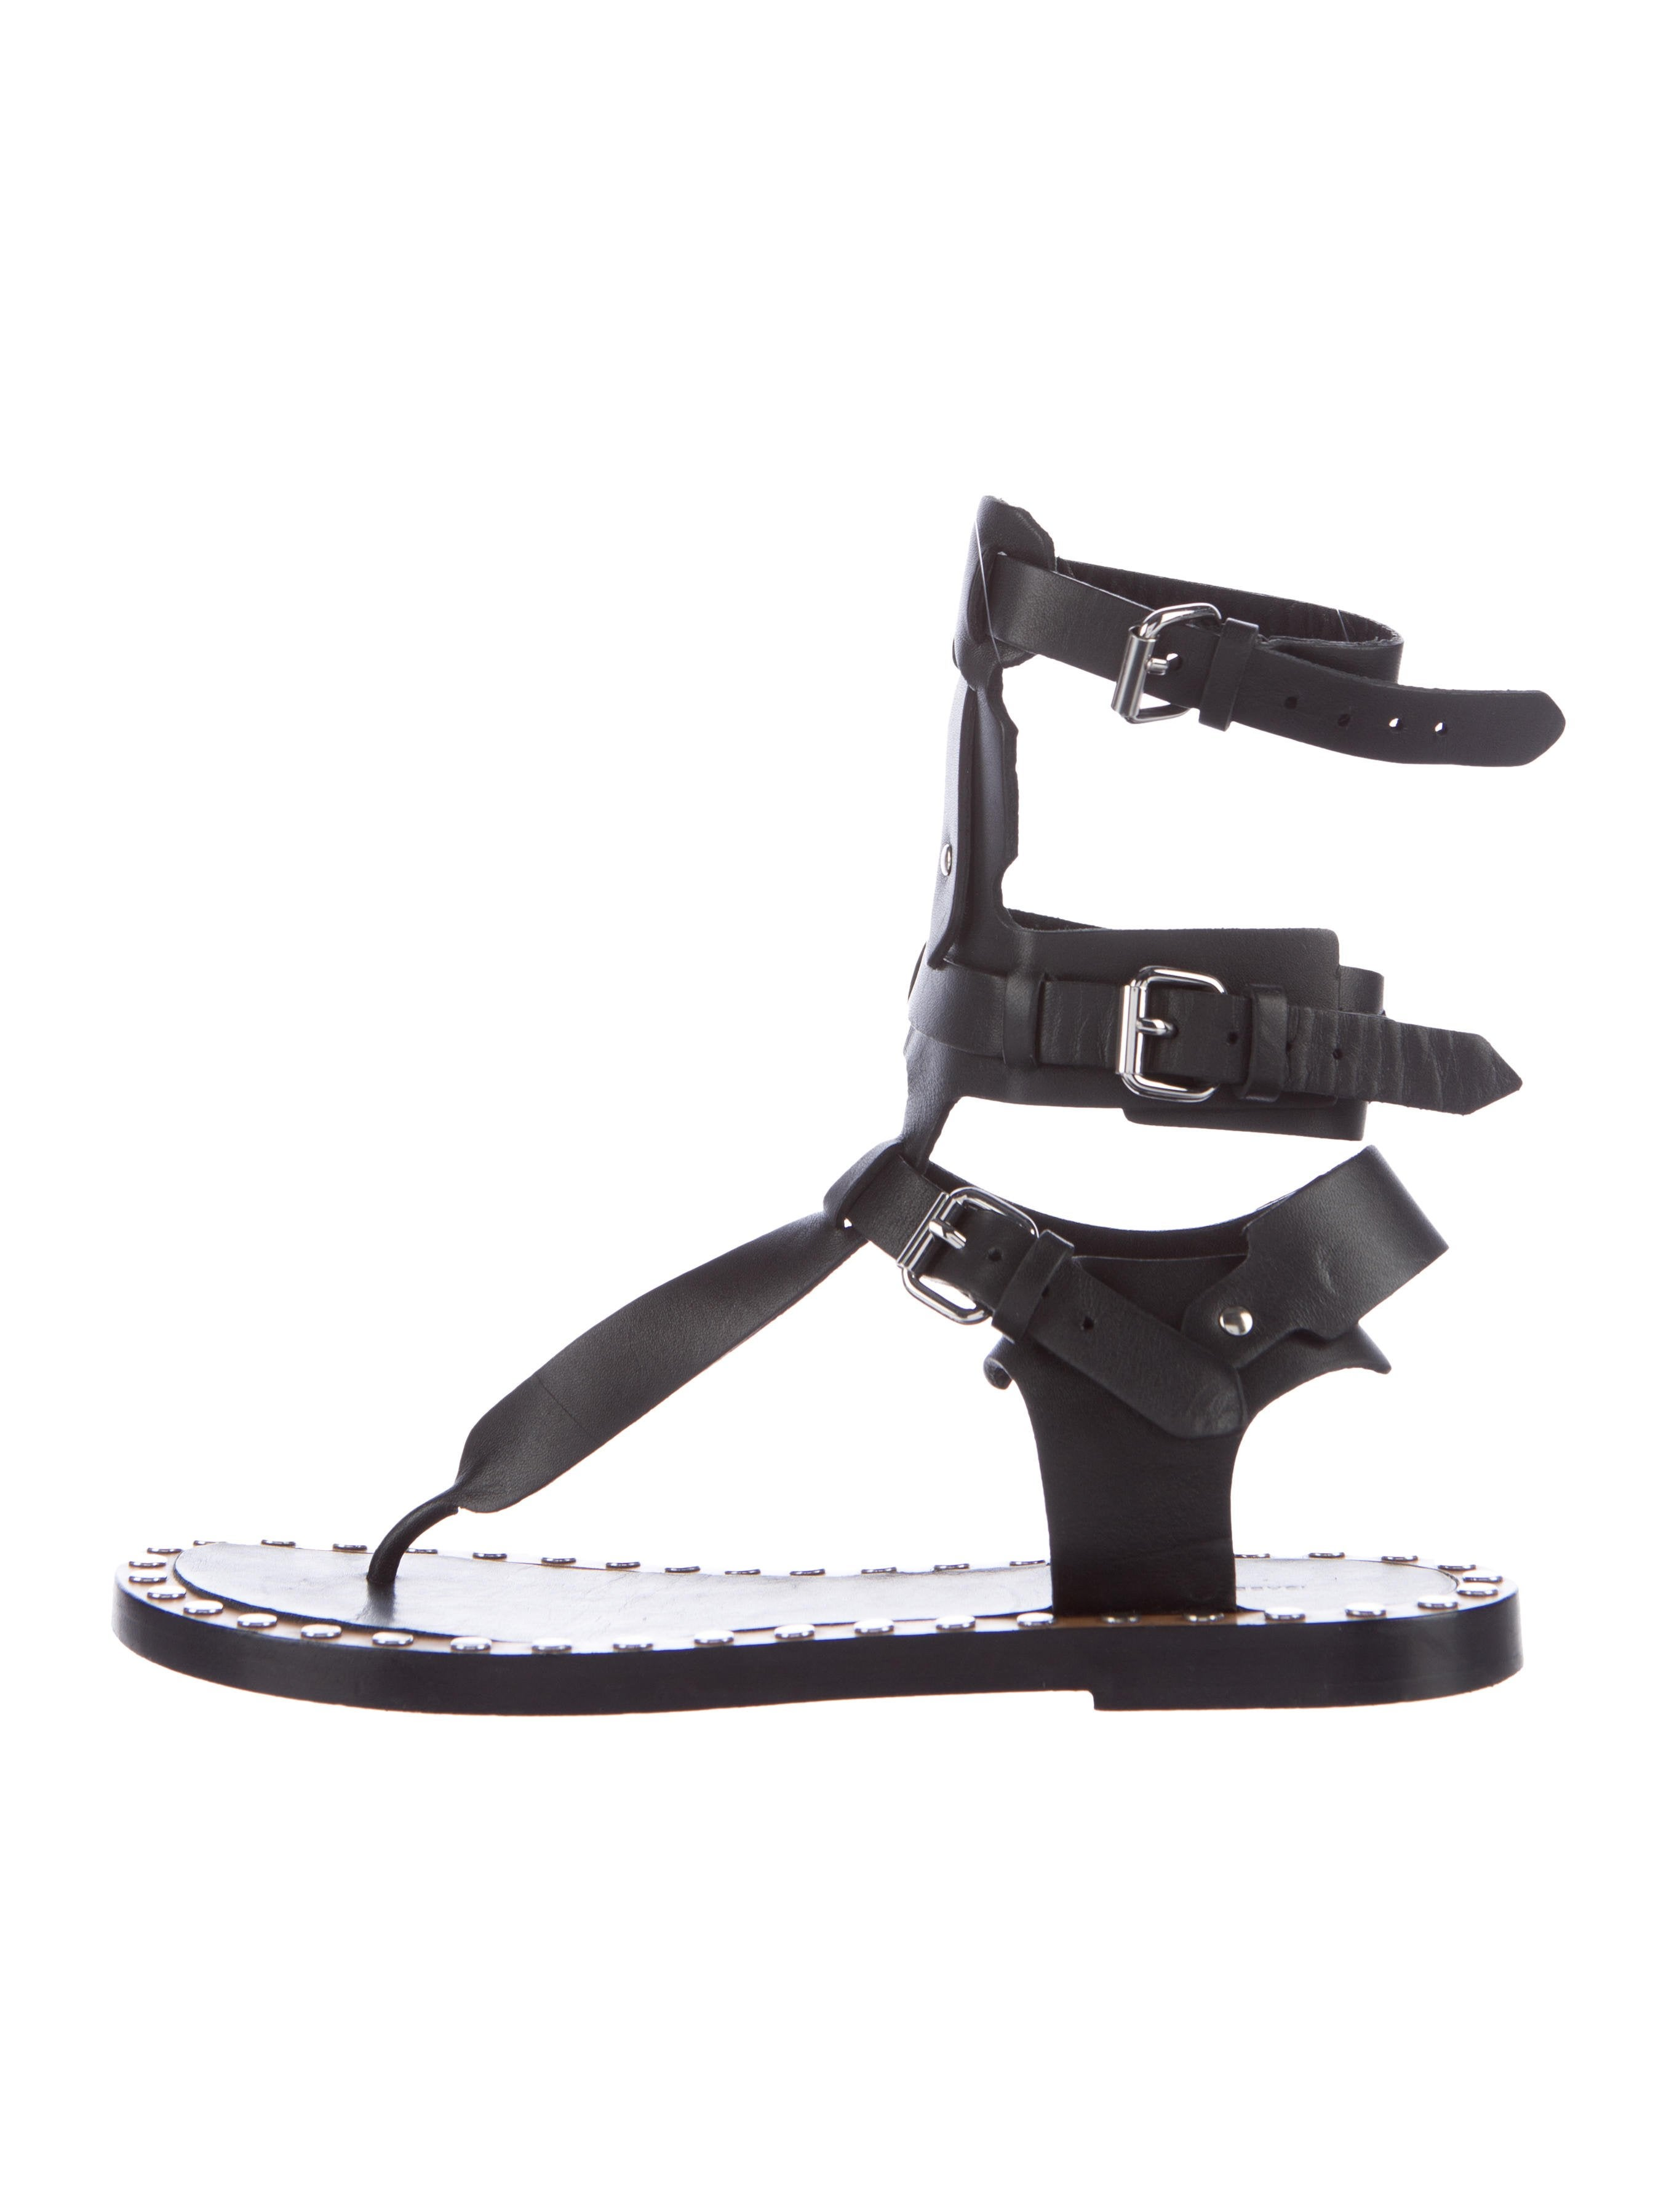 06cd93f14e17 Isabel Marant Jeepy Leather Sandals - Shoes - ISA44465